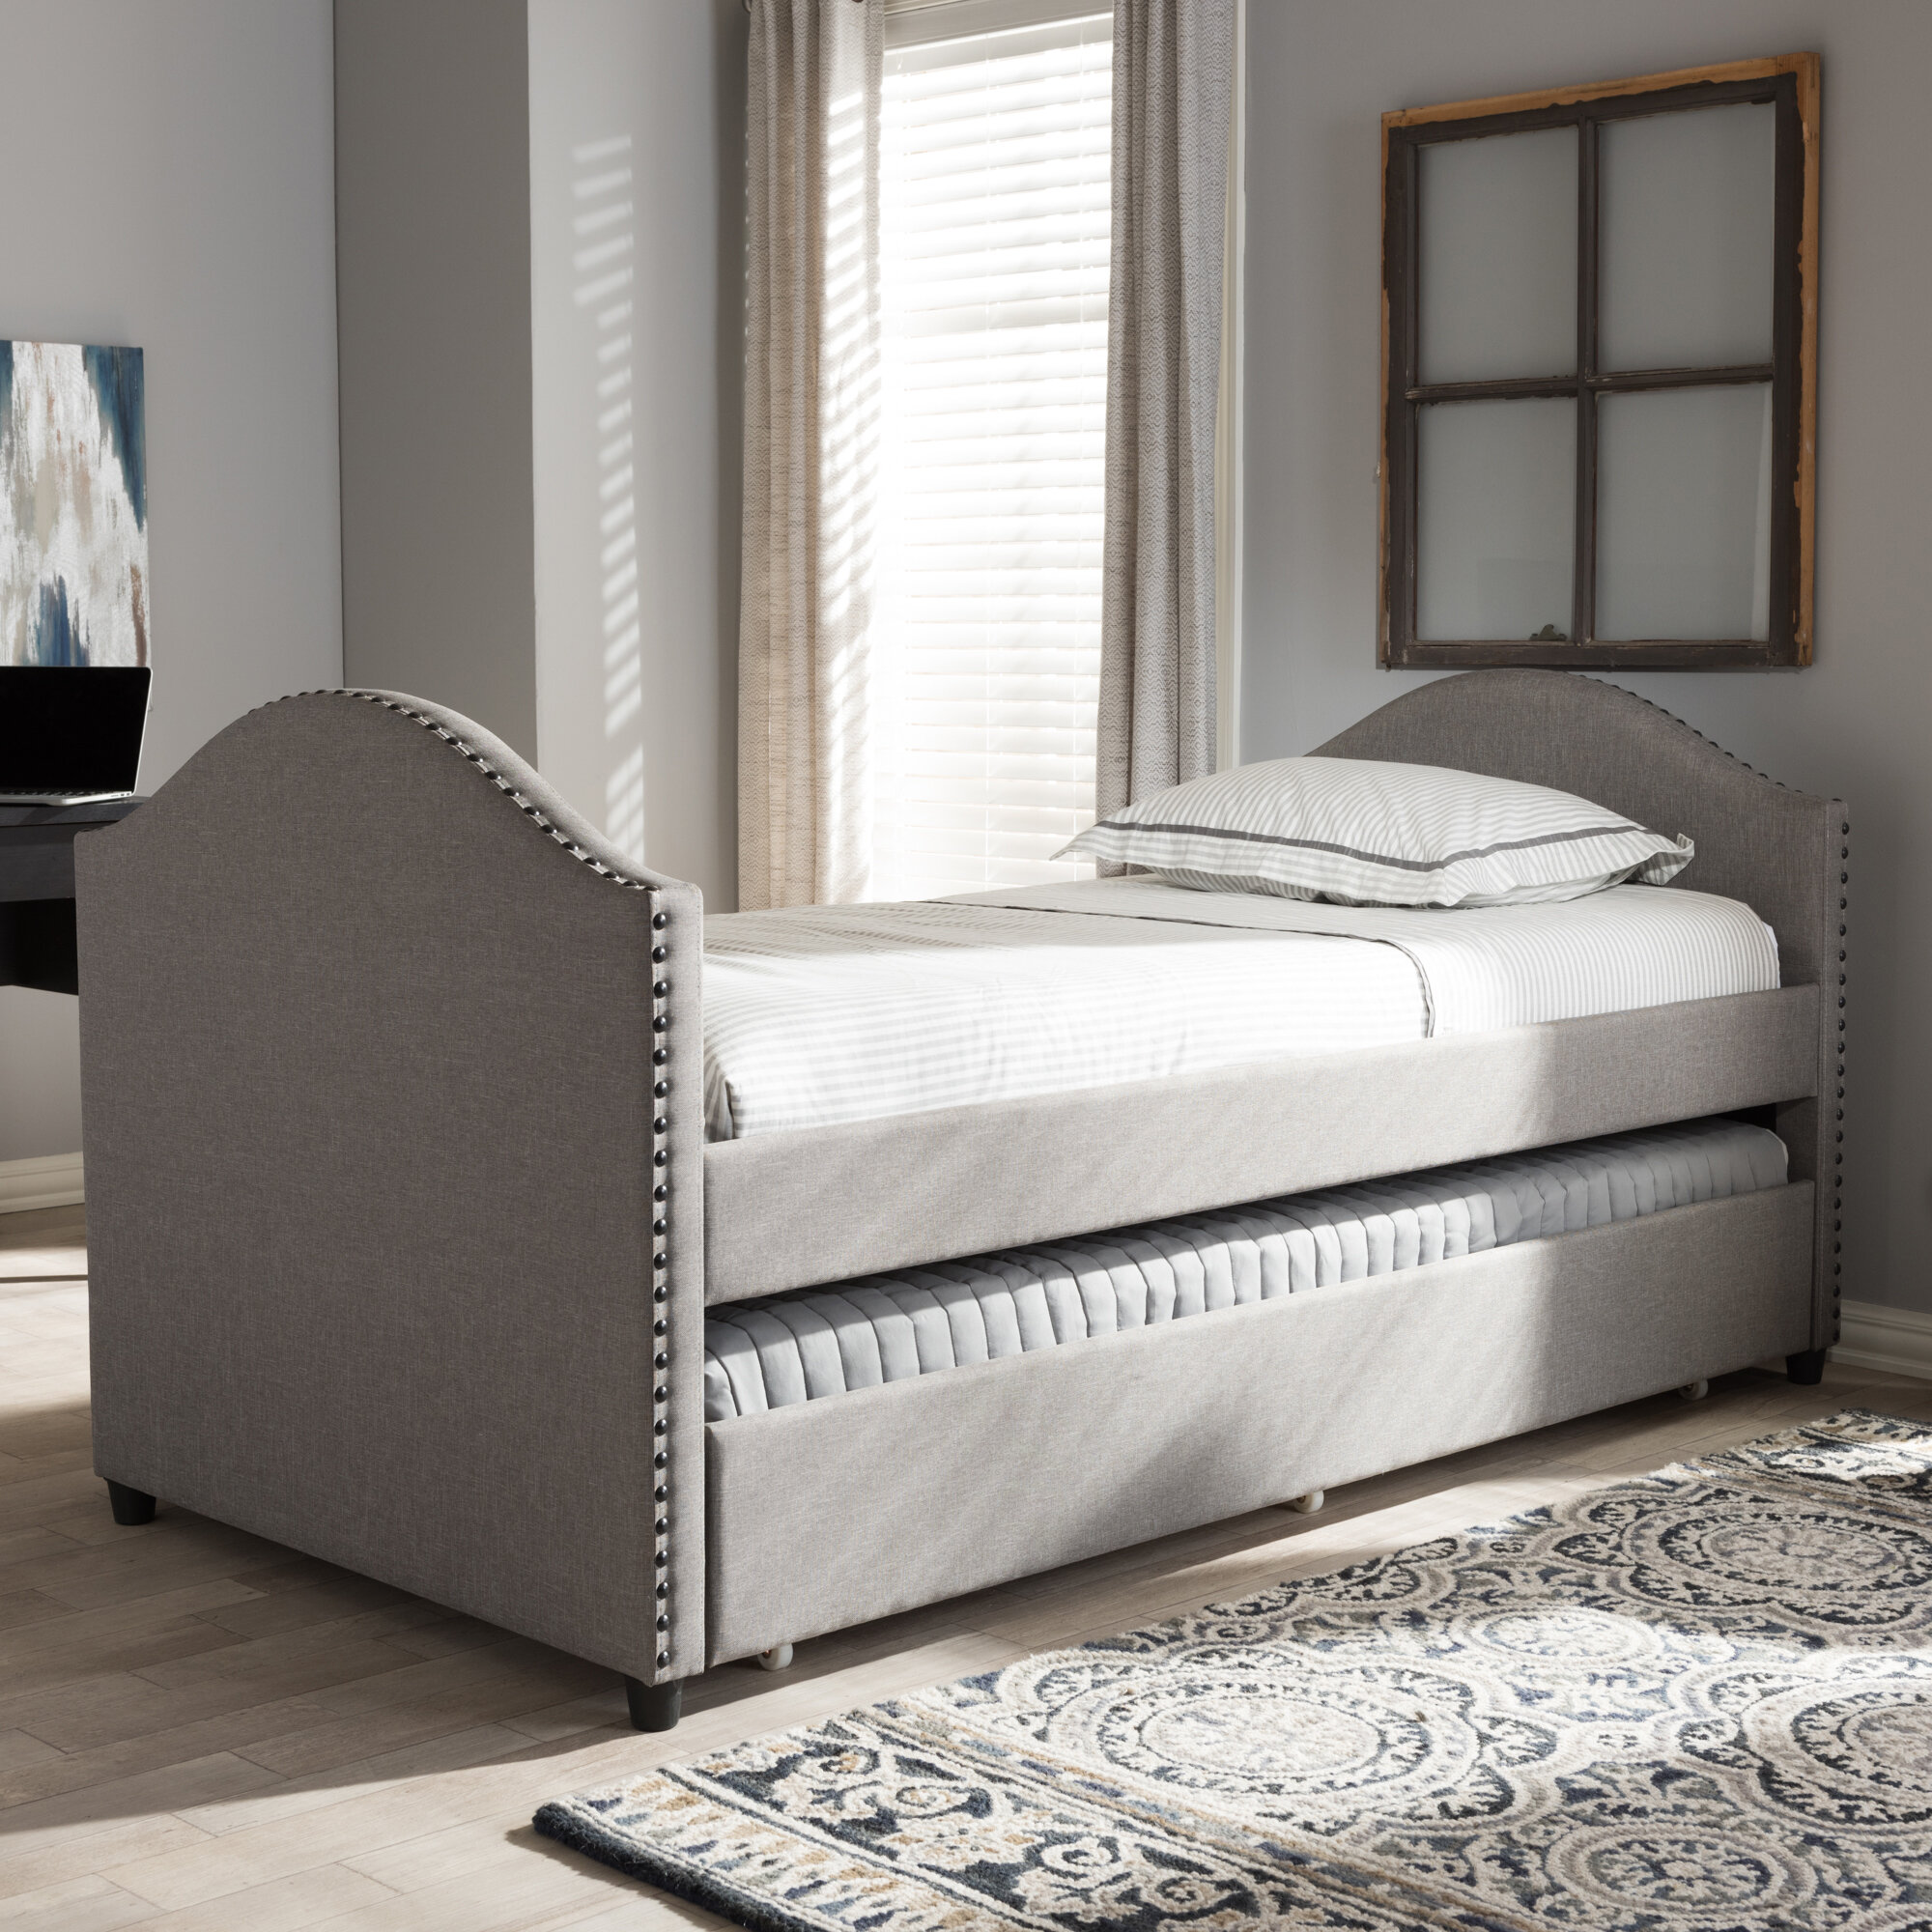 Willa Arlo Interiors Rubenstein Daybed with Trundle Bed & Reviews